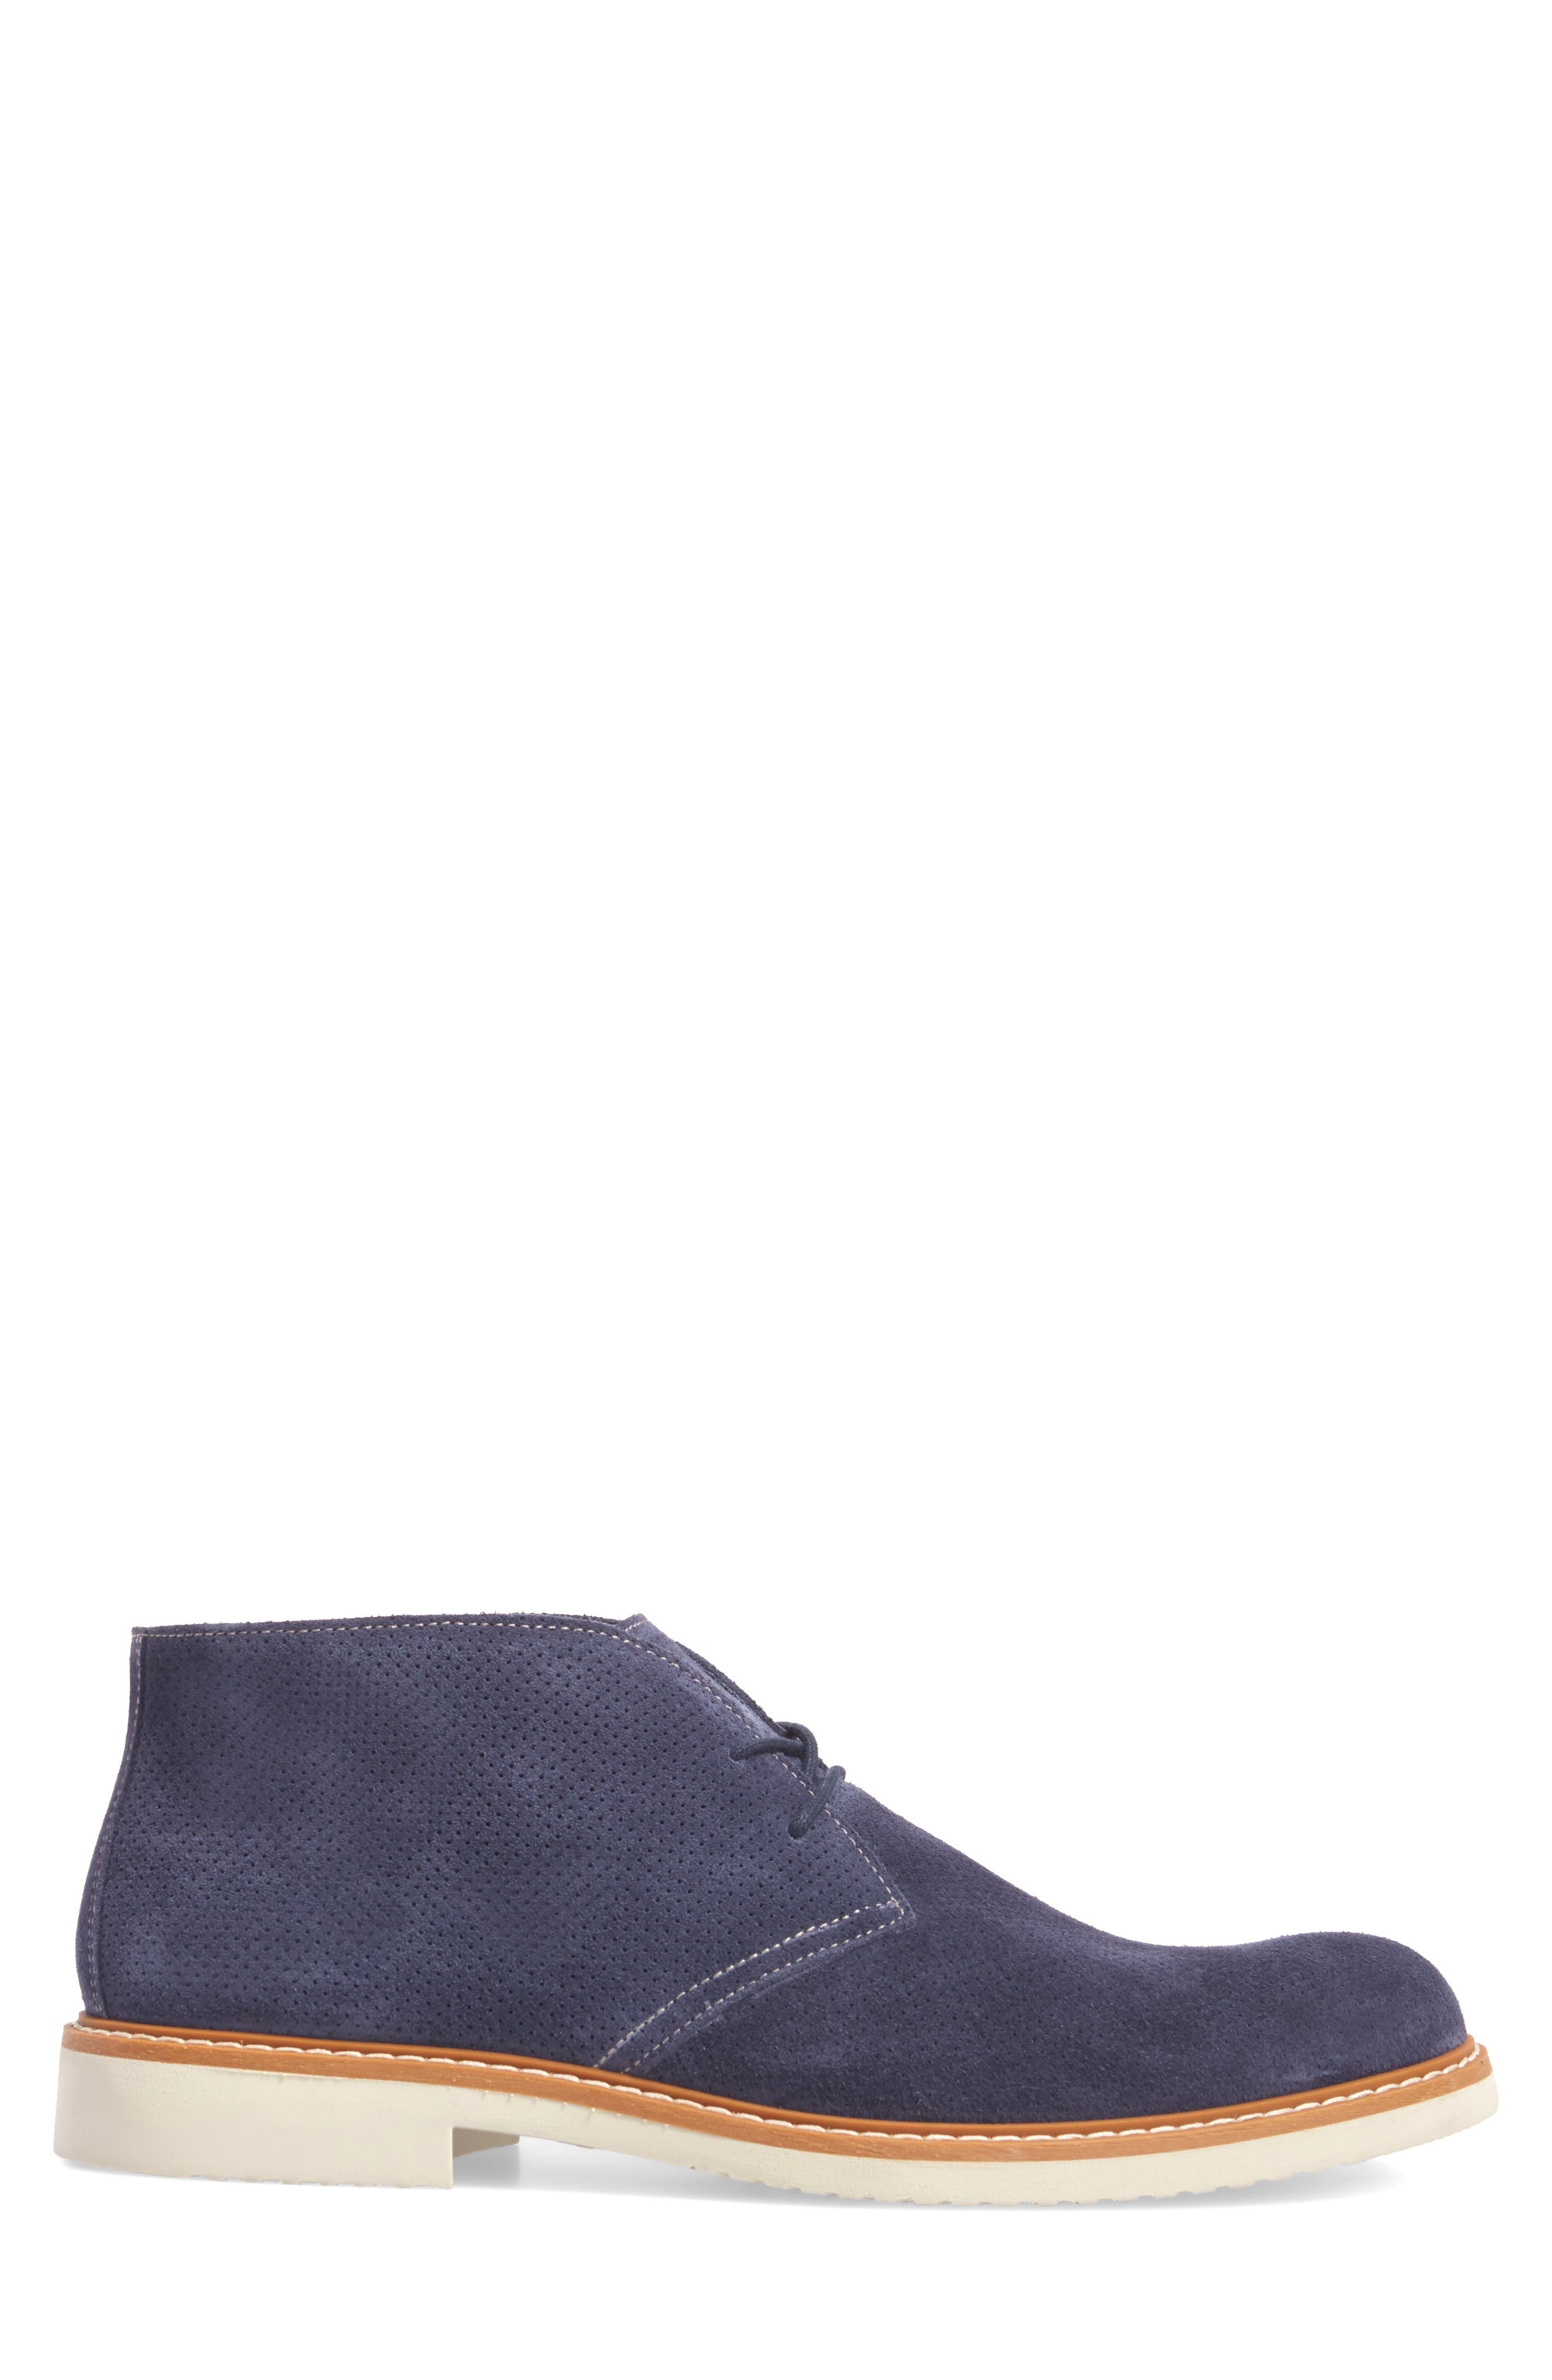 Bayside Perforated Chukka Boot,                             Alternate thumbnail 3, color,                             Blue Suede